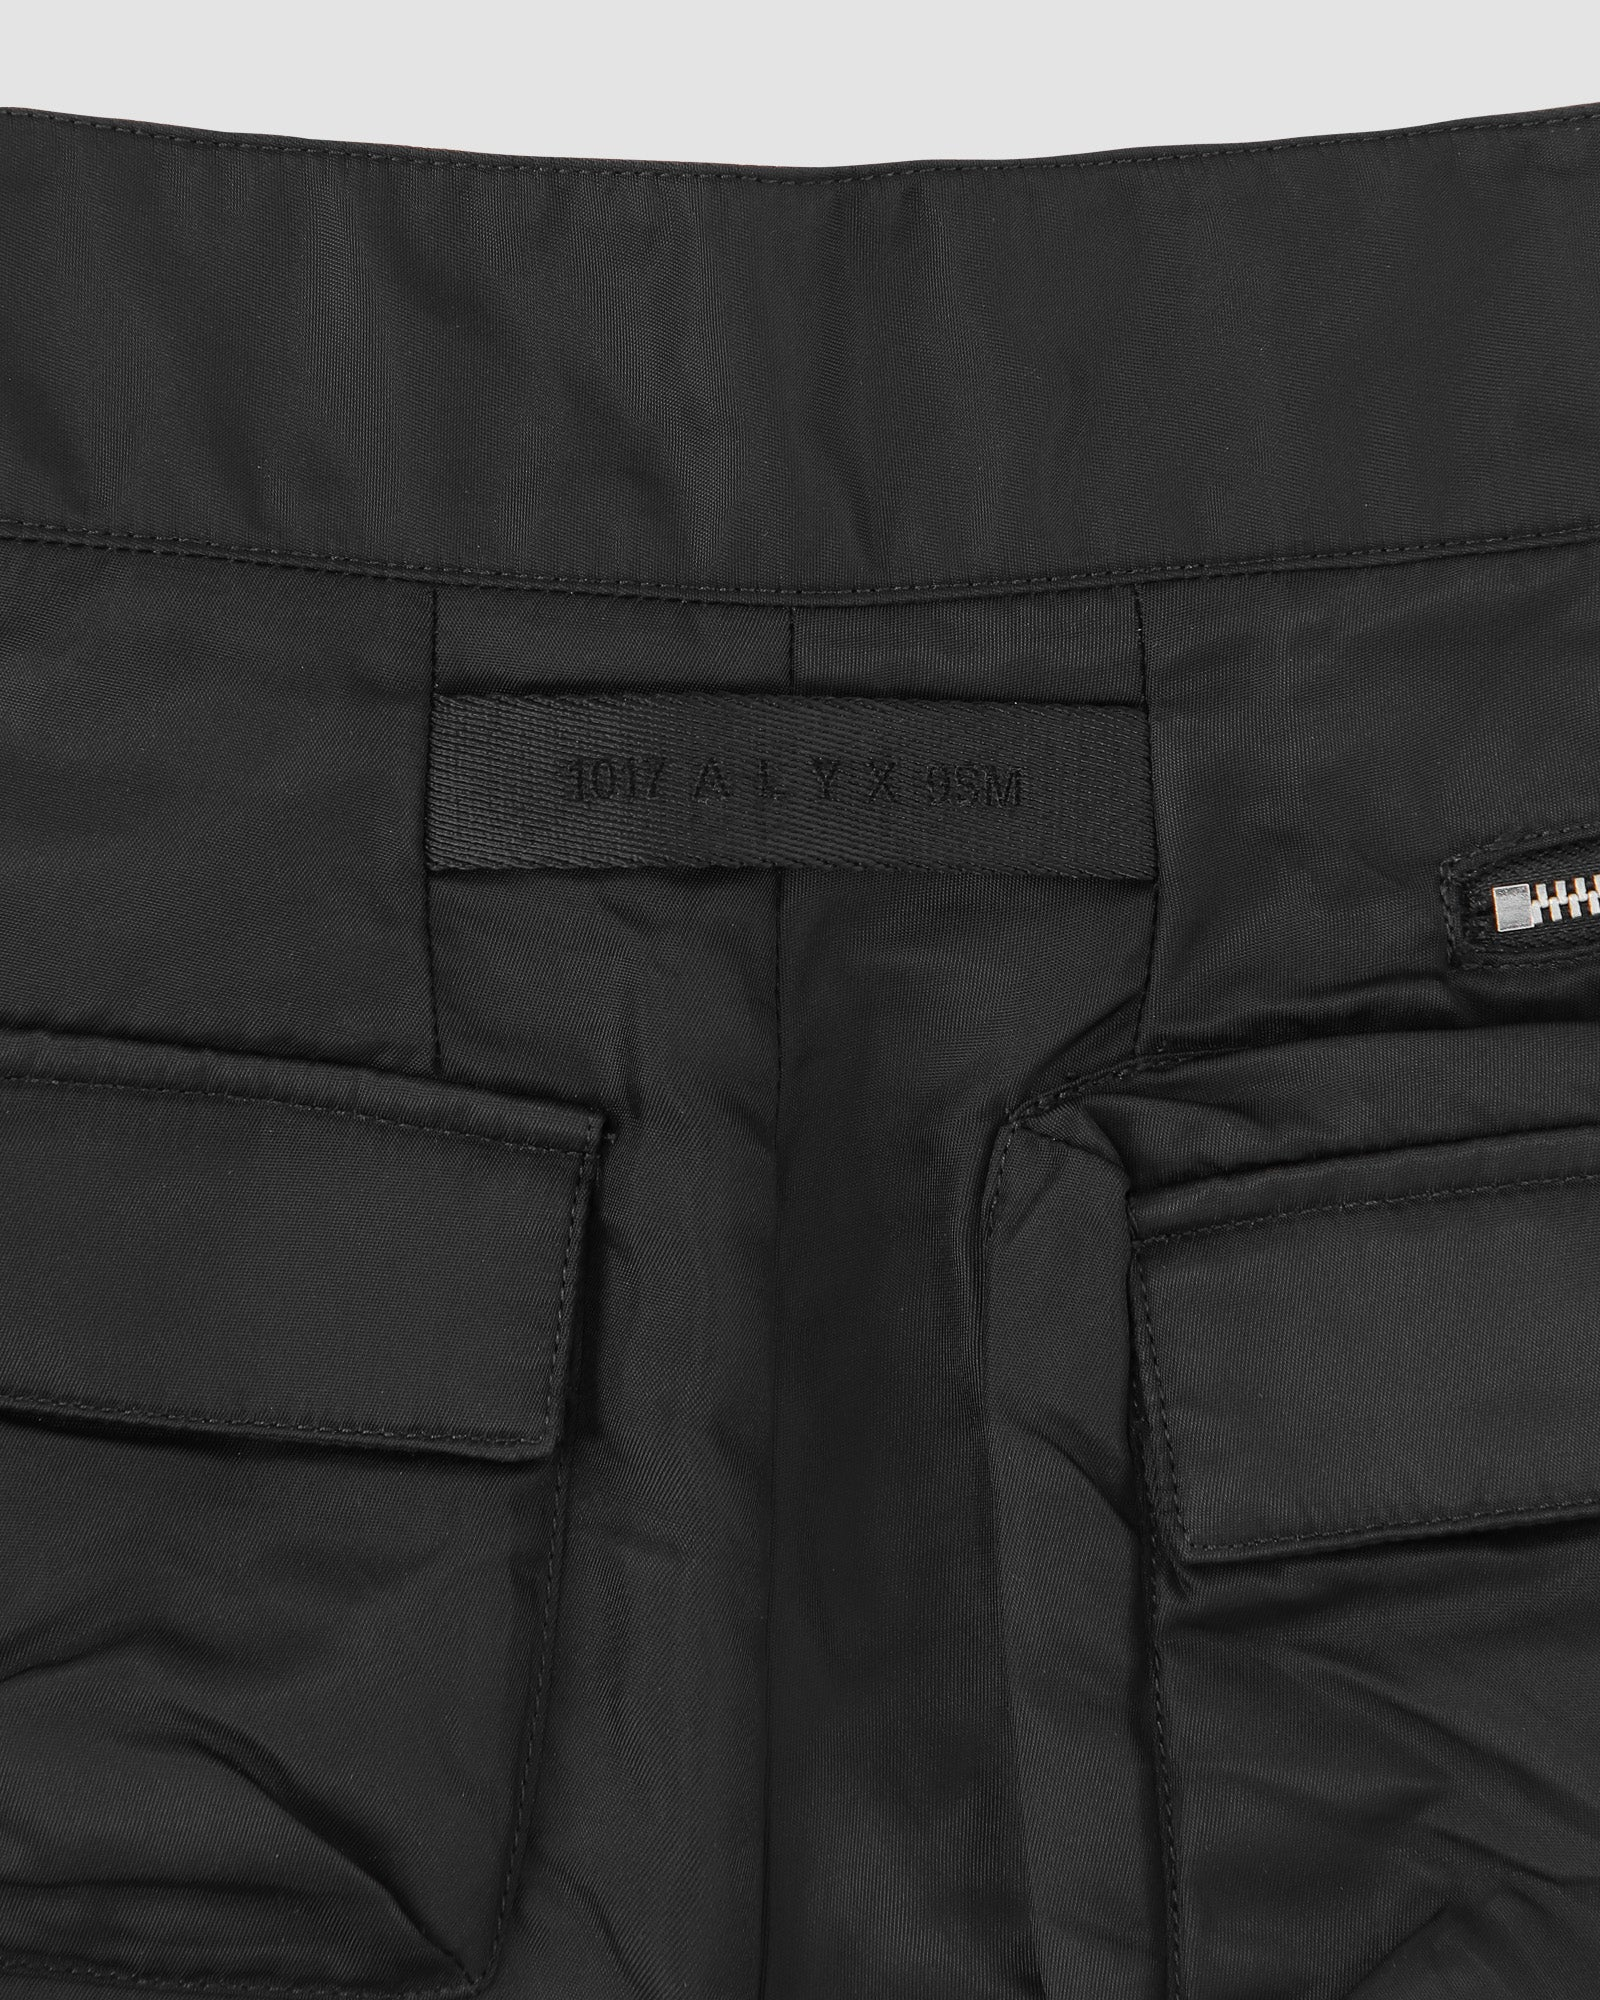 1017 ALYX 9SM | BLACK MULTIPOCKET SHORT | Pants | Black, Google Shopping, Man, MEN, S20, S20 Drop II, SHORTS, Trousers